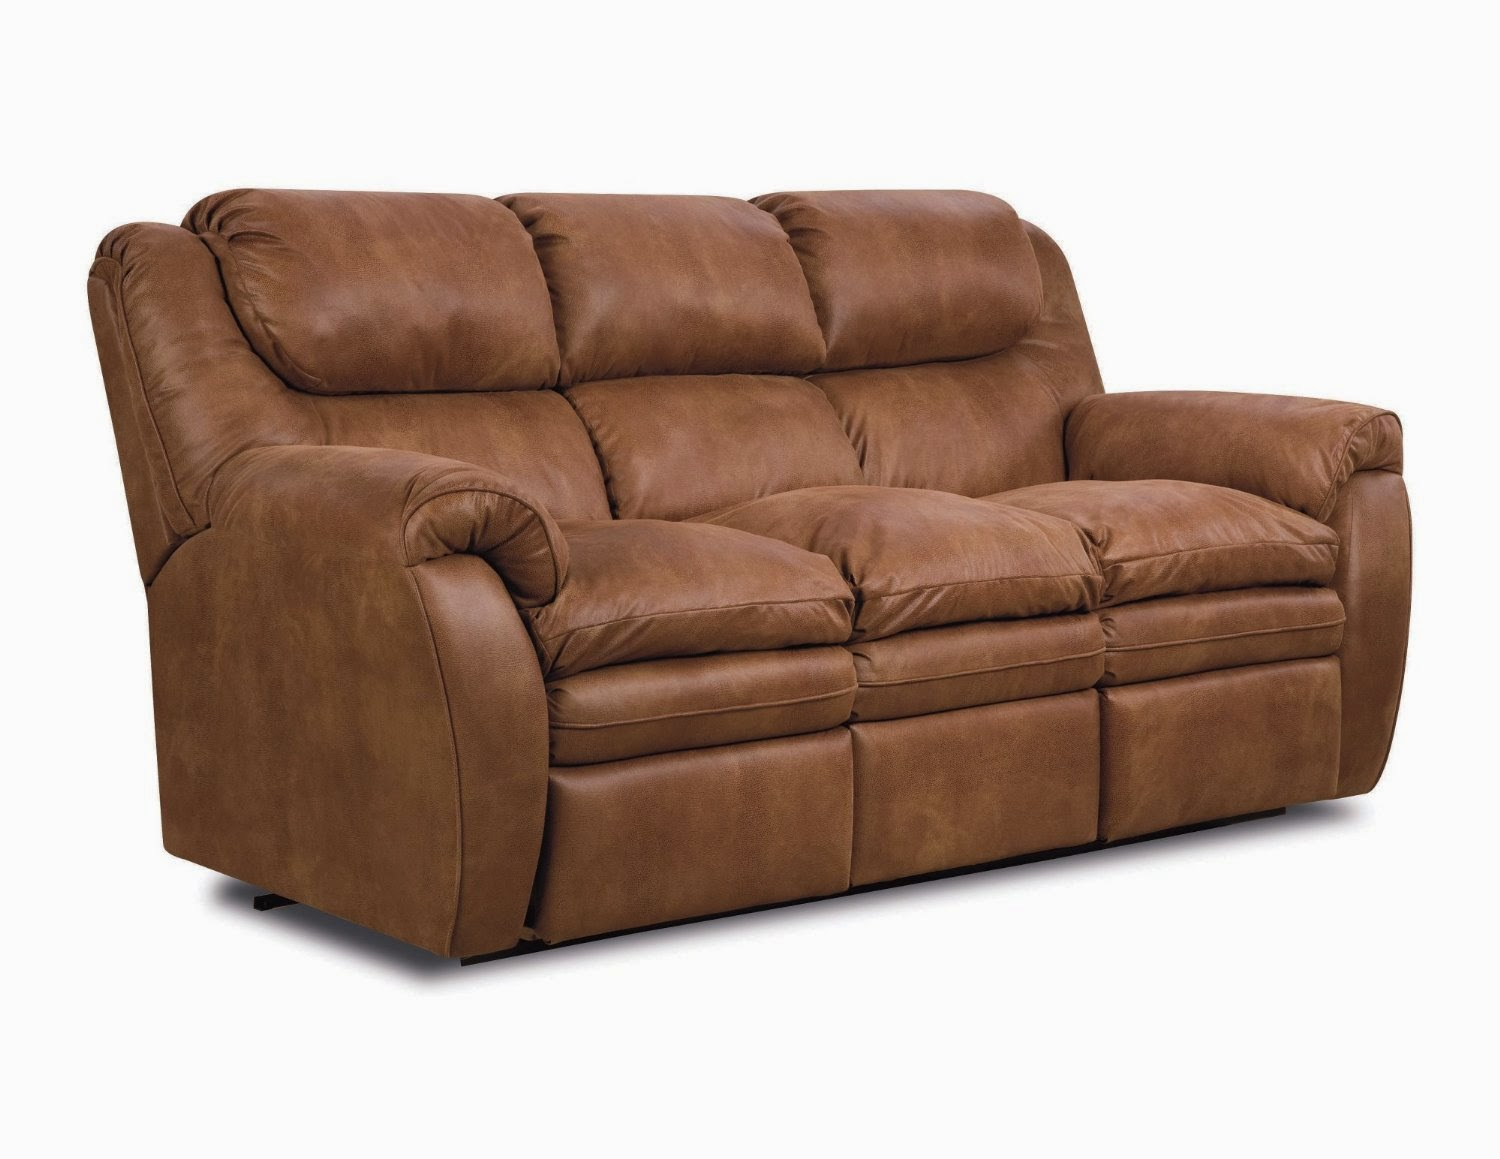 Reclining sofas for sale lane hendrix reclining sofa reviews for Sectionals for sale